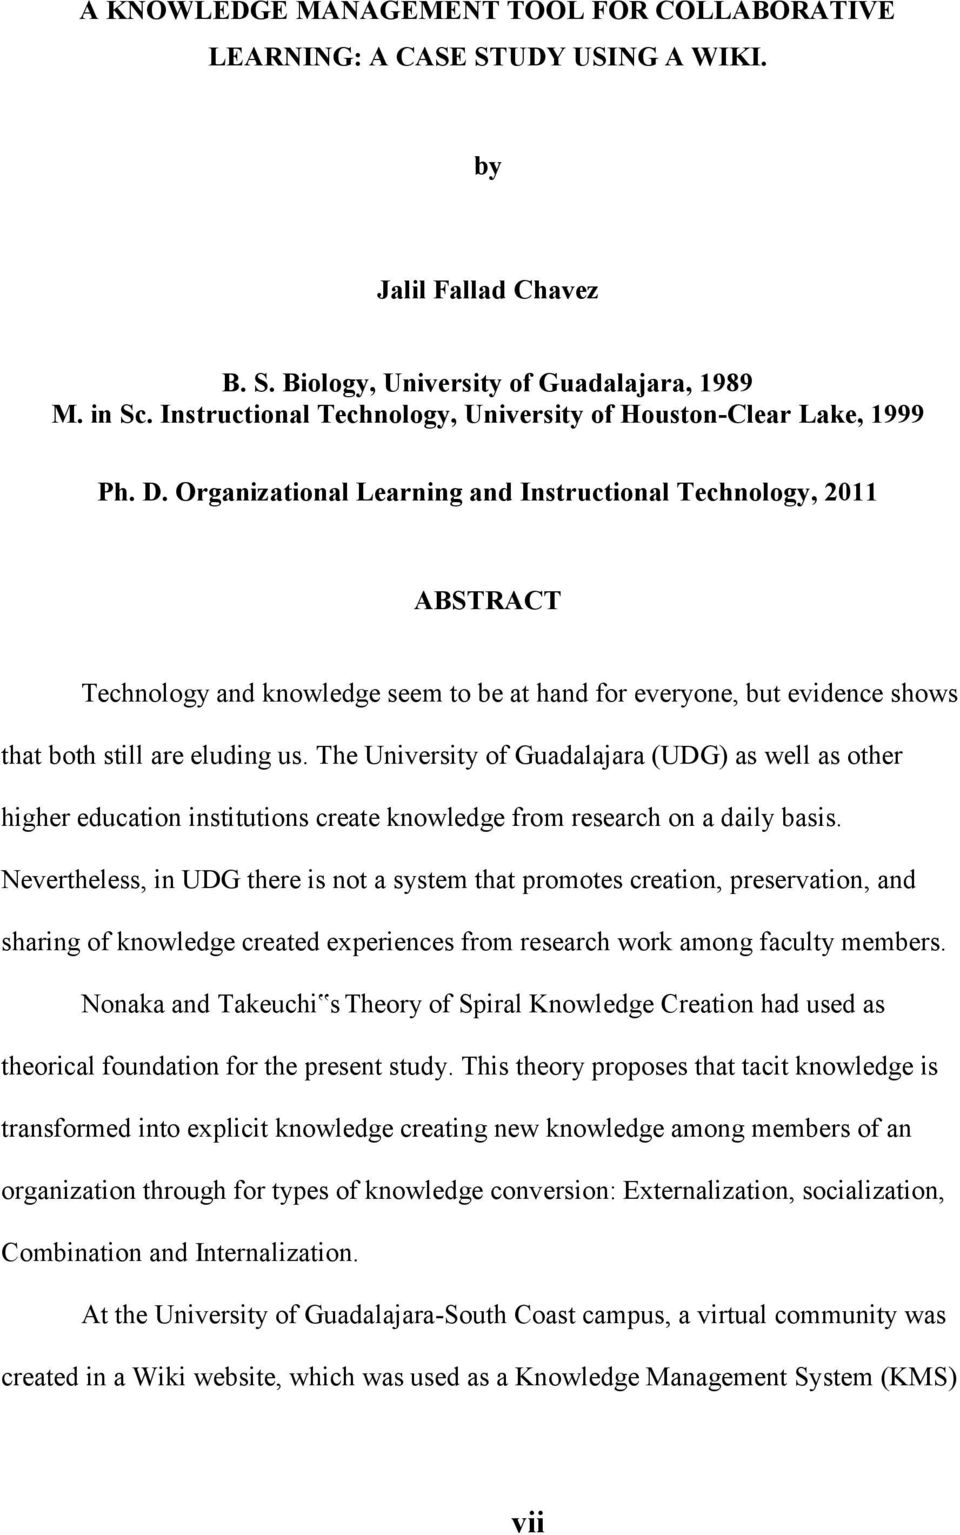 Organizational Learning and Instructional Technology, 2011 ABSTRACT Technology and knowledge seem to be at hand for everyone, but evidence shows that both still are eluding us.